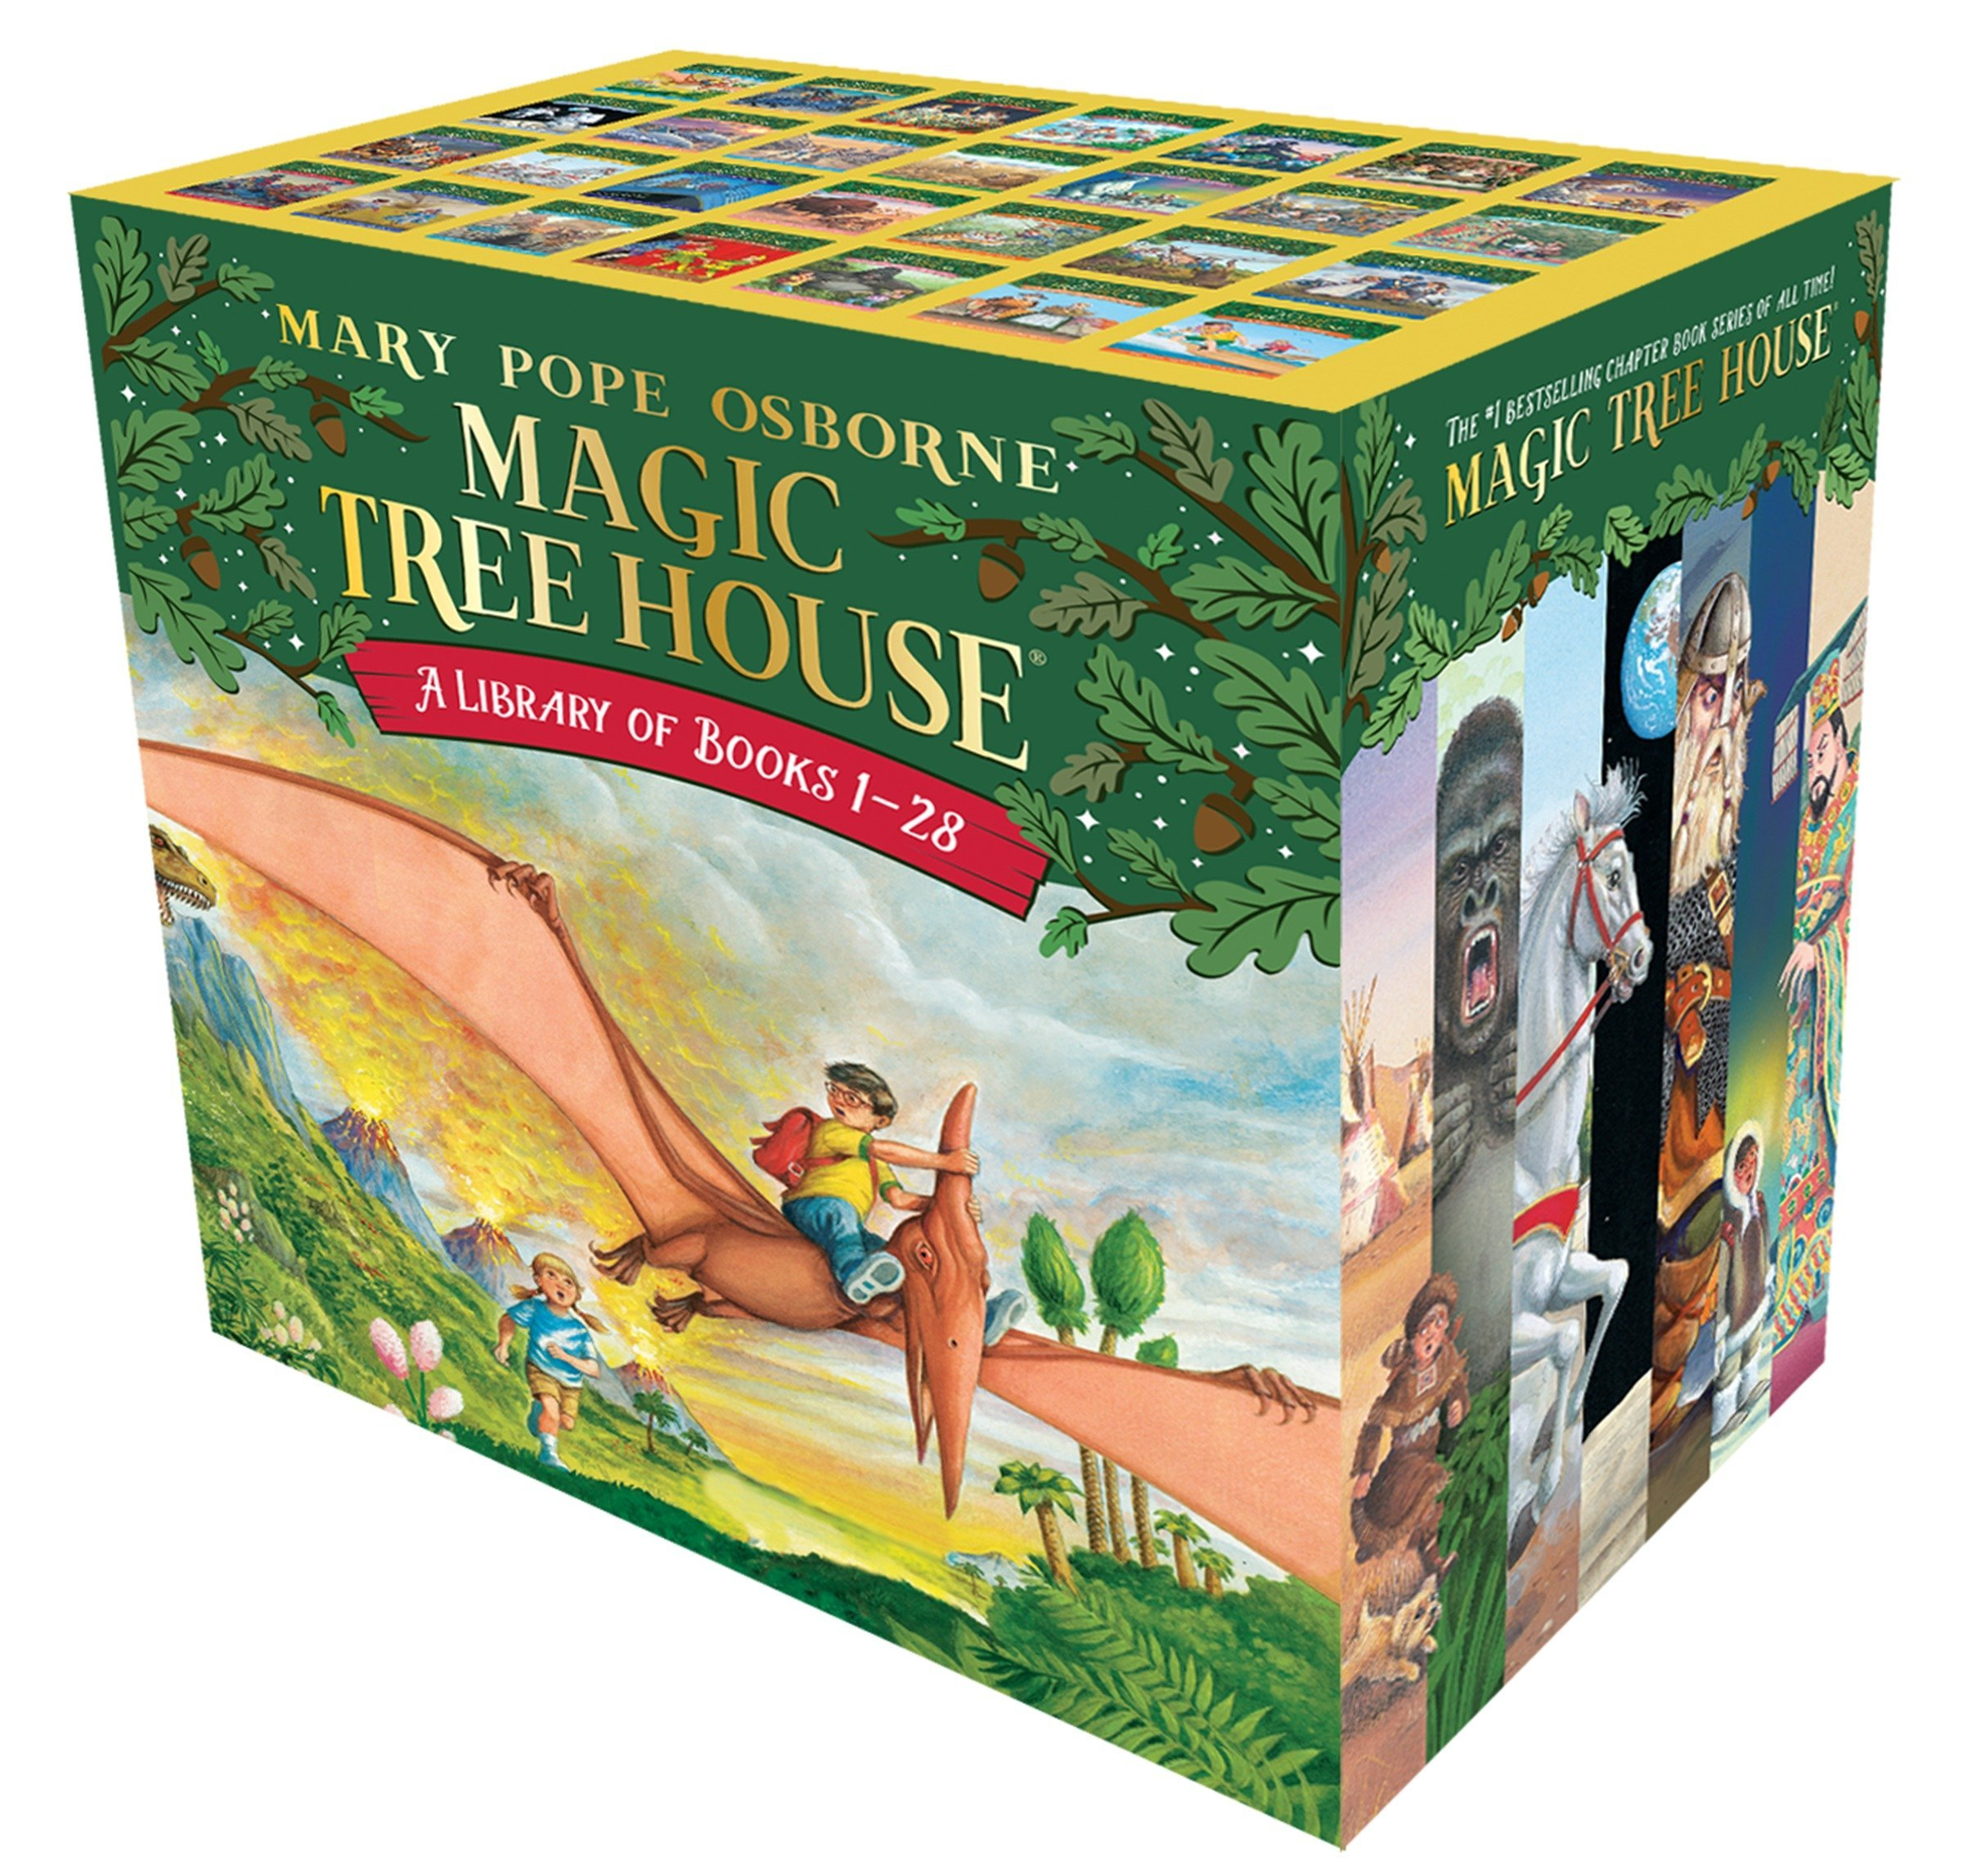 Magic Tree House Set 1 28